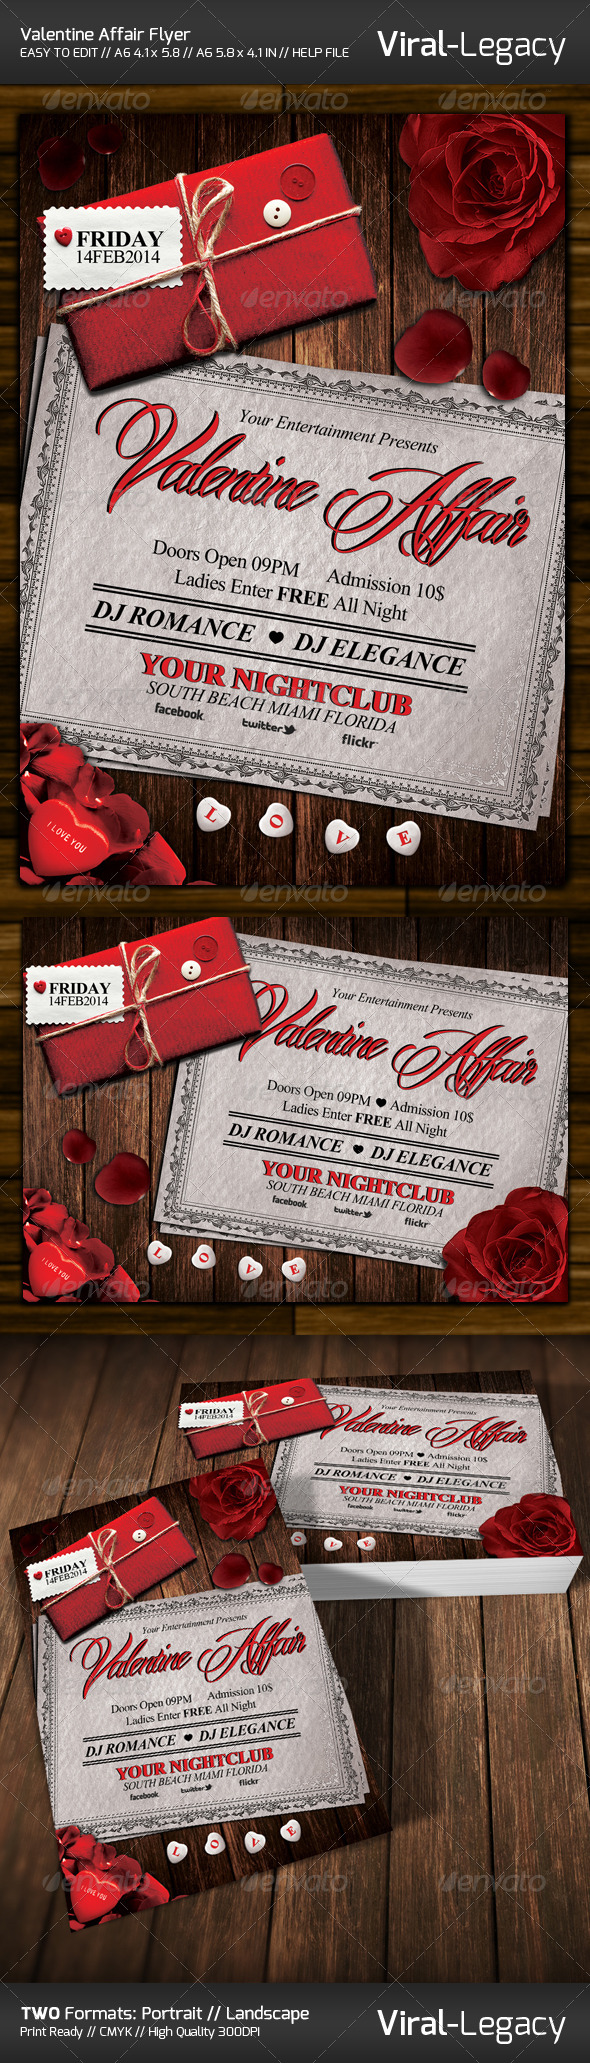 GraphicRiver Valentine Affair Flyer 6574388